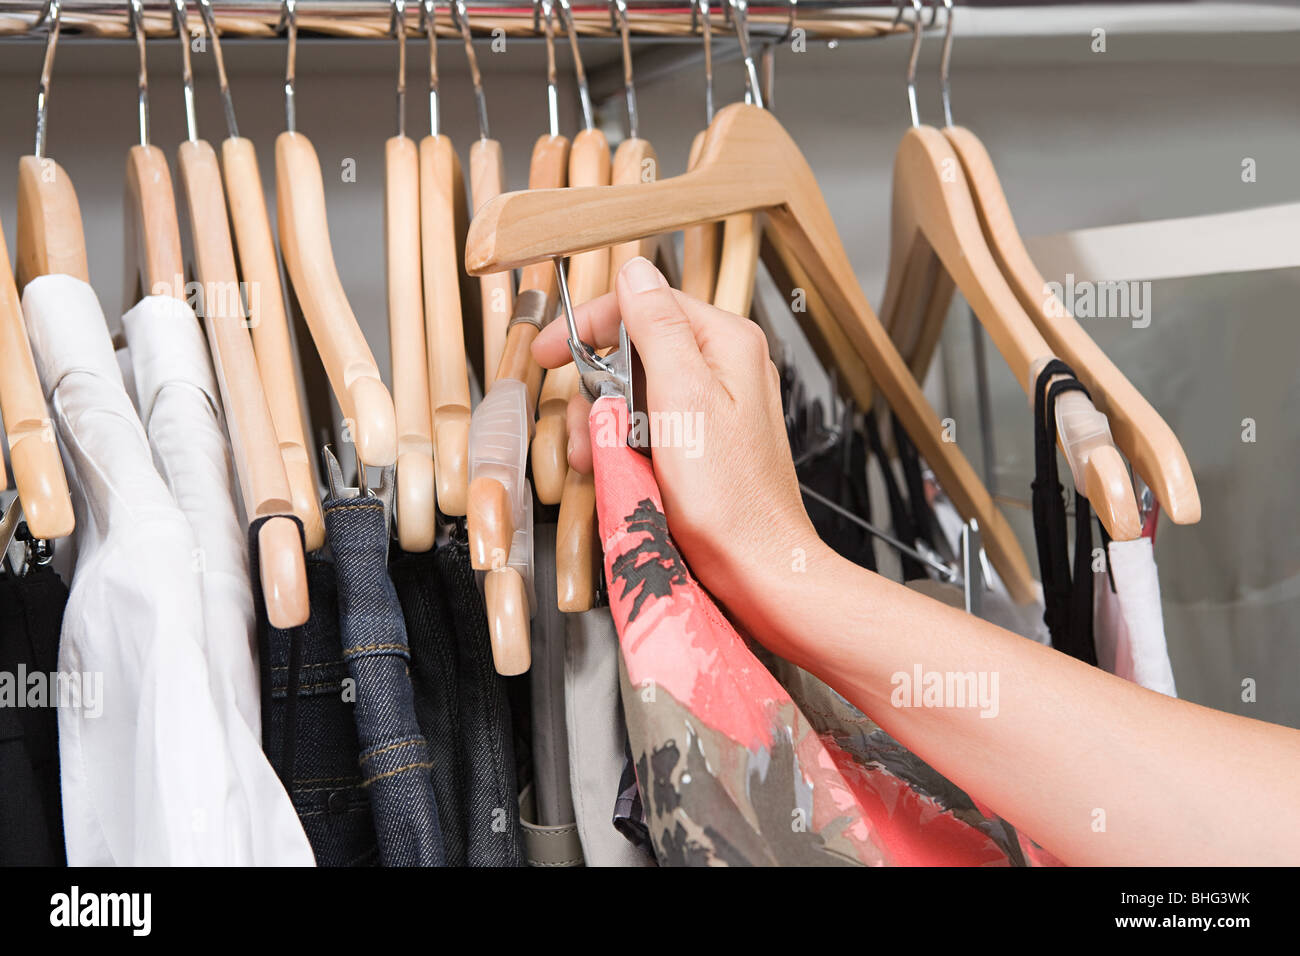 Hand of a woman and clothing rail - Stock Image